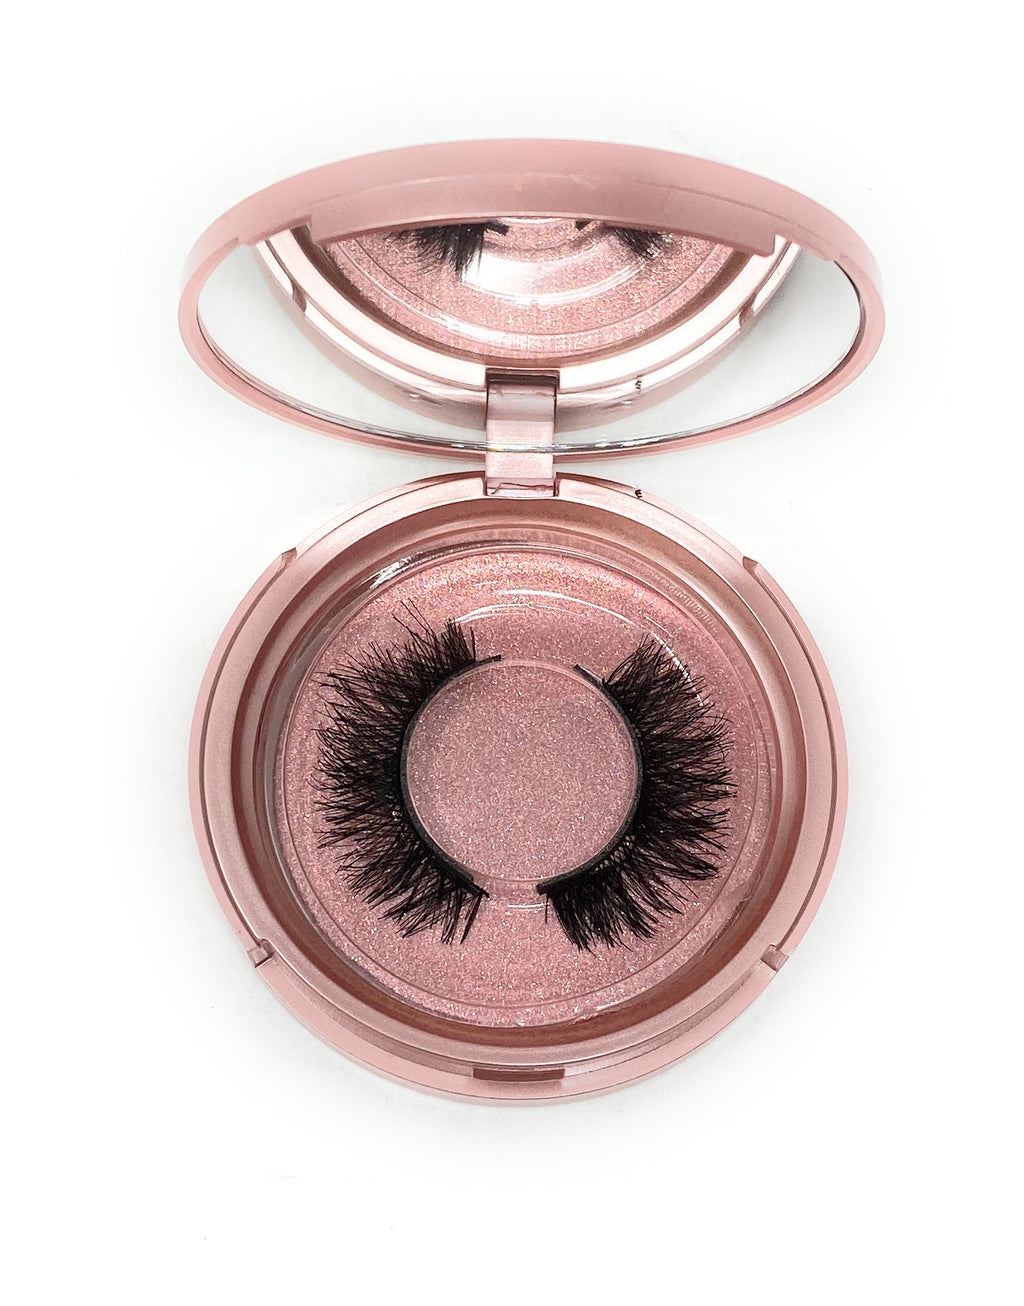 Magnetic Lash in the style Cutie Pie, Fluffy, Reusable, Flexible, Lightweight Lashes with Mirror